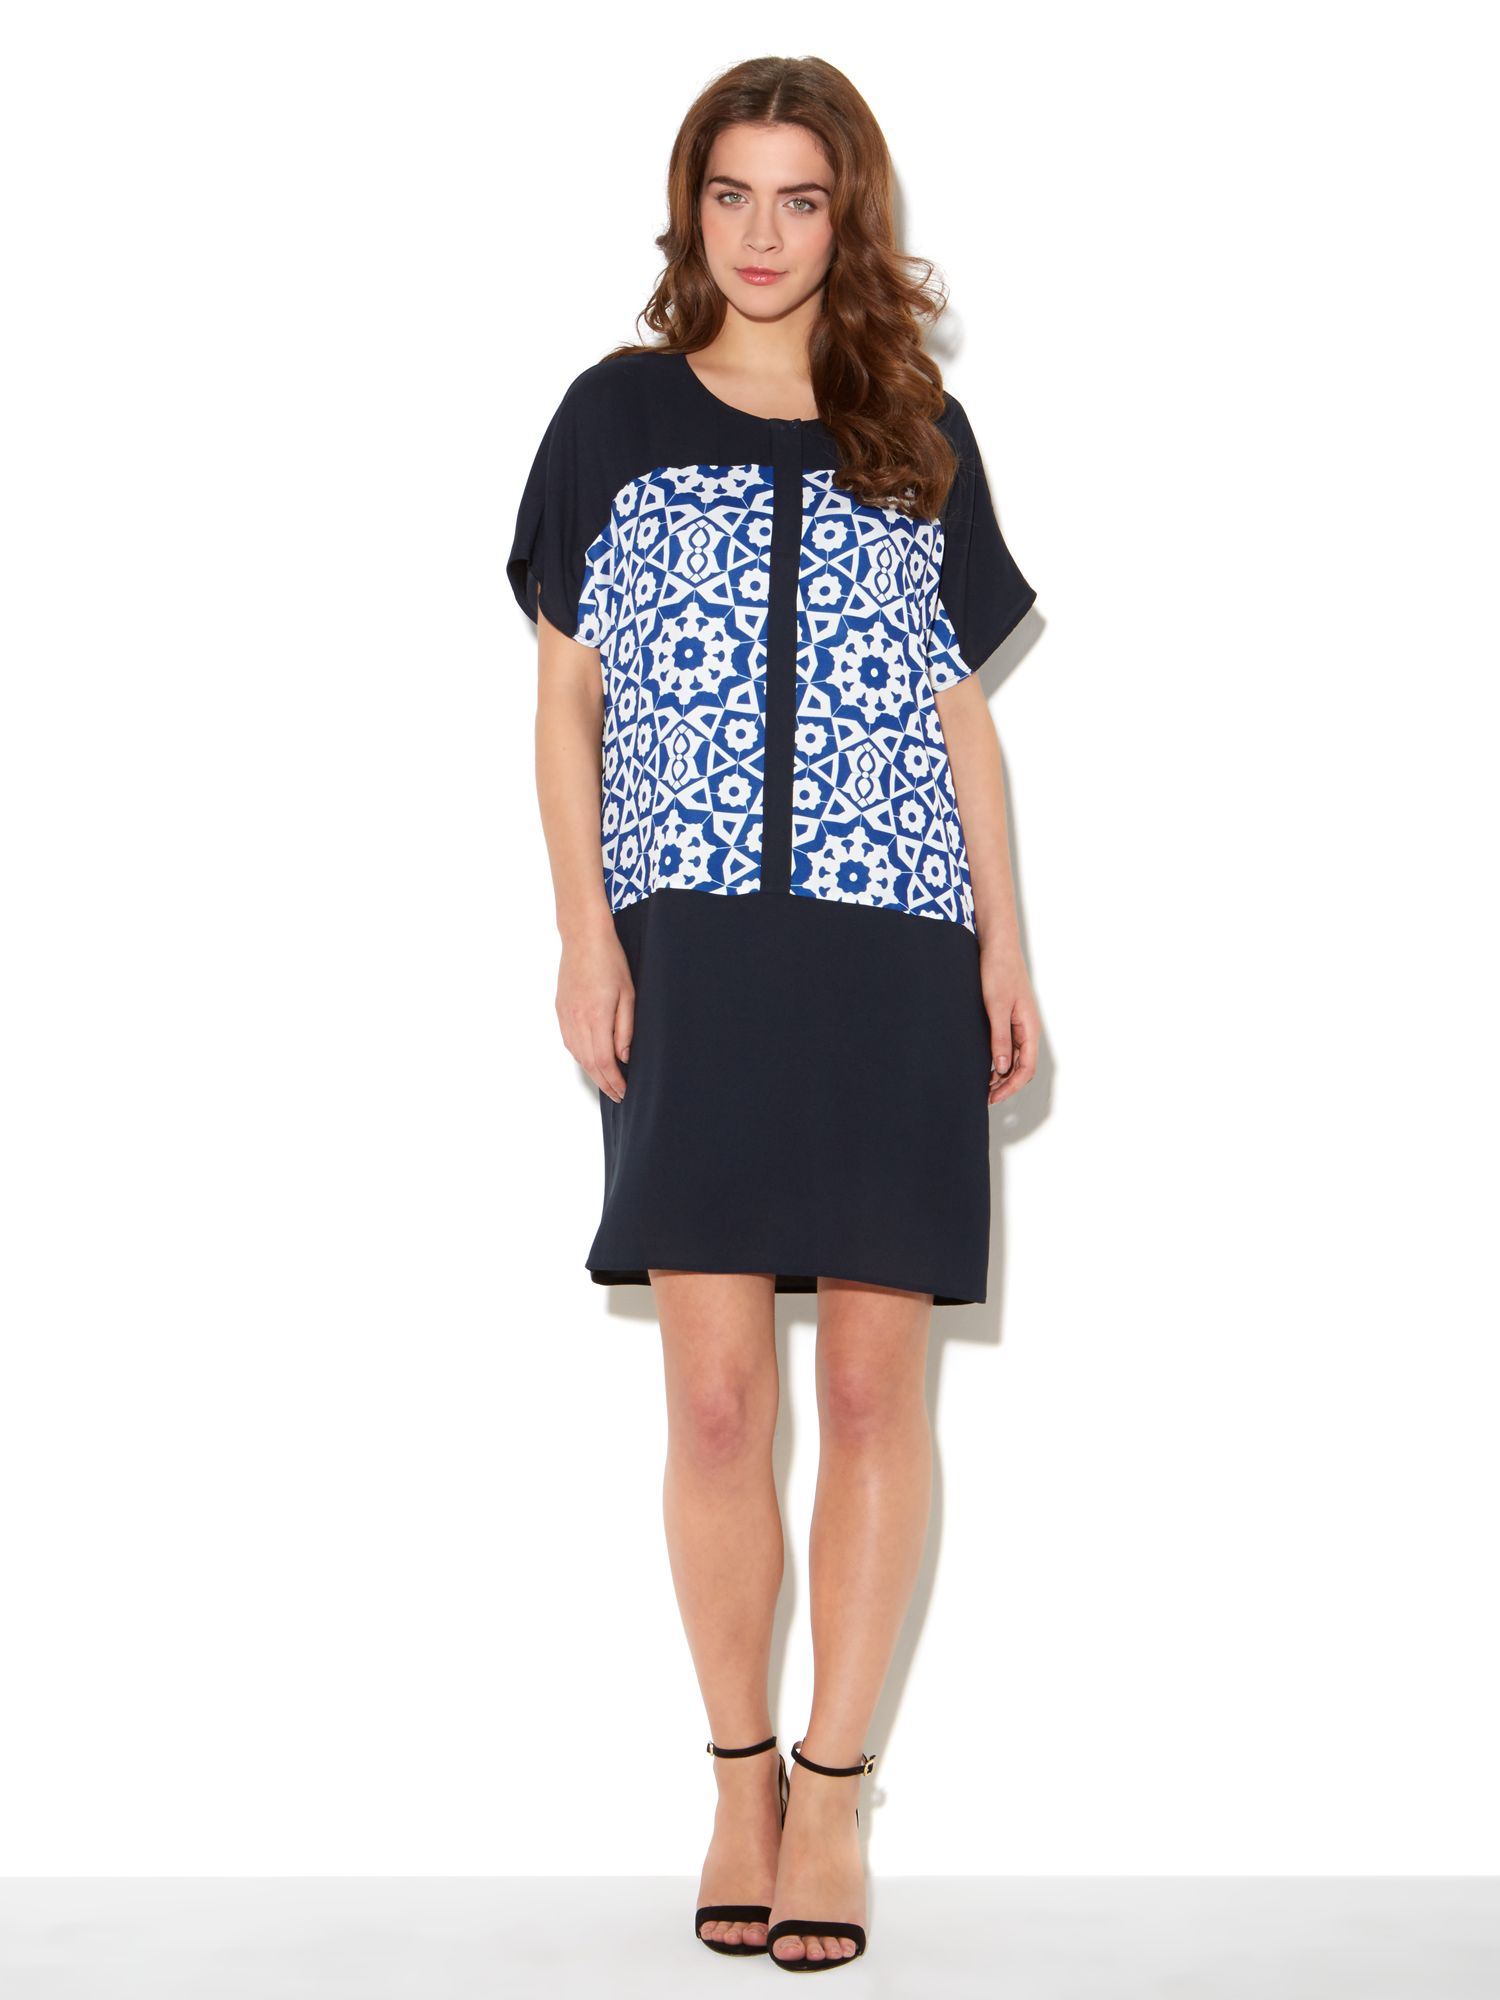 Print block placket dress